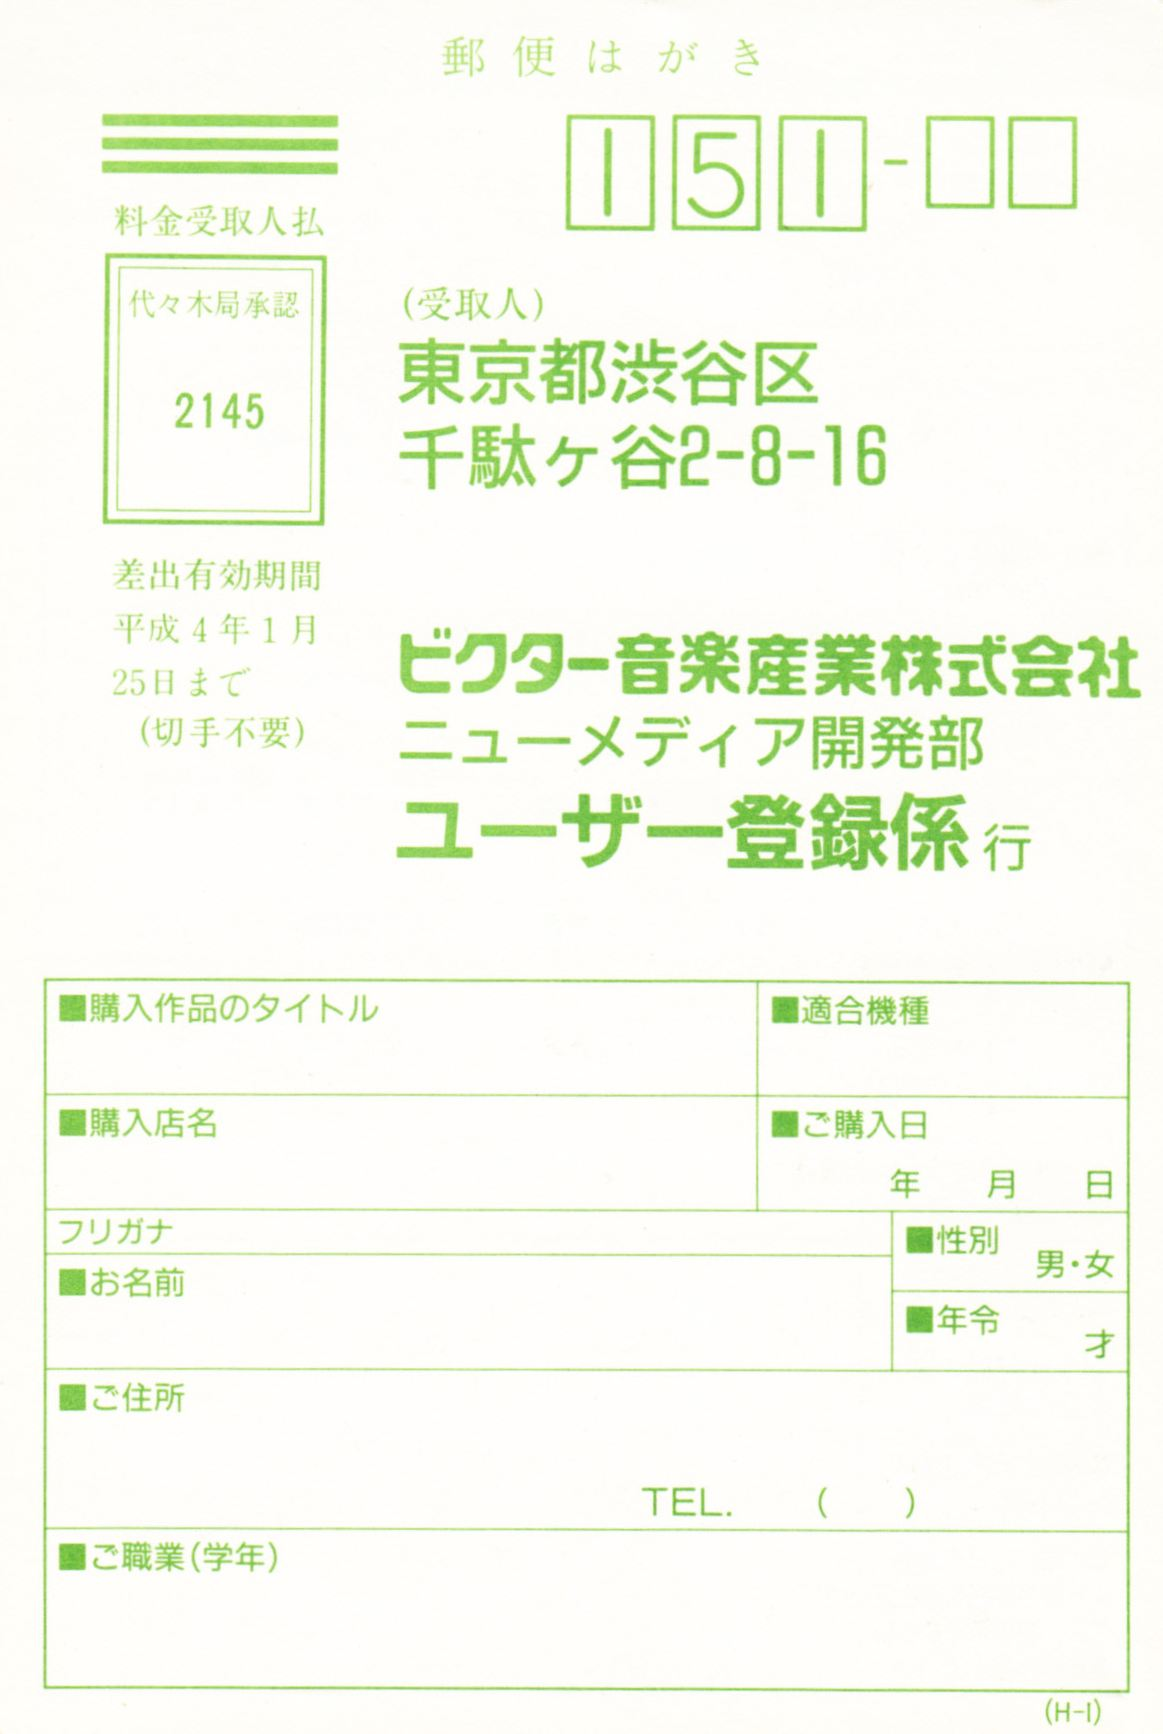 Game - Dungeon Master - JP - PC-9801 - 5.25-inch - Registration Card - Front - Scan